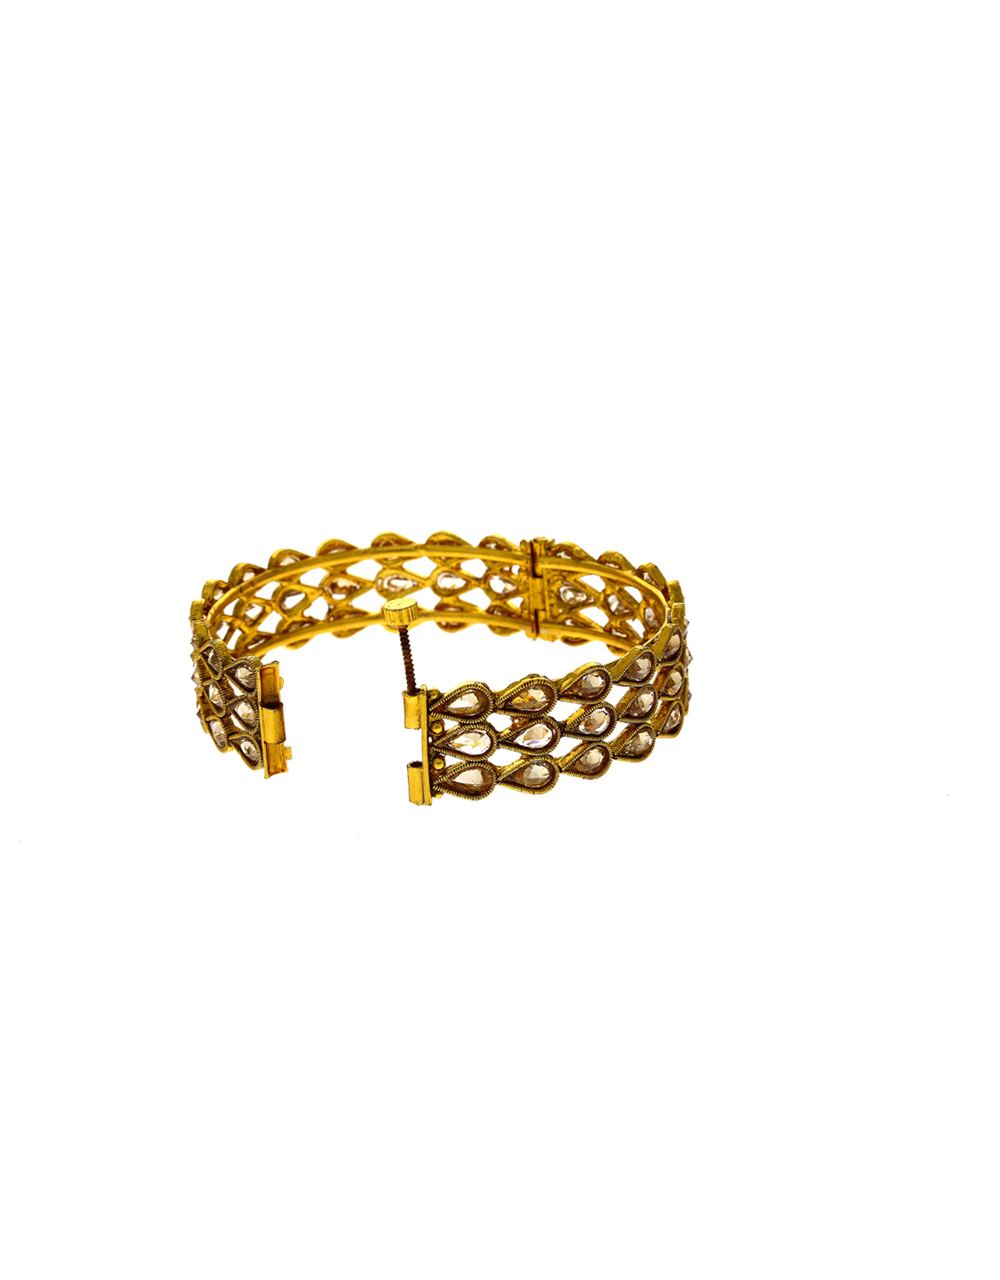 Very Classy Gold Finish Stunning Bangles For Bride